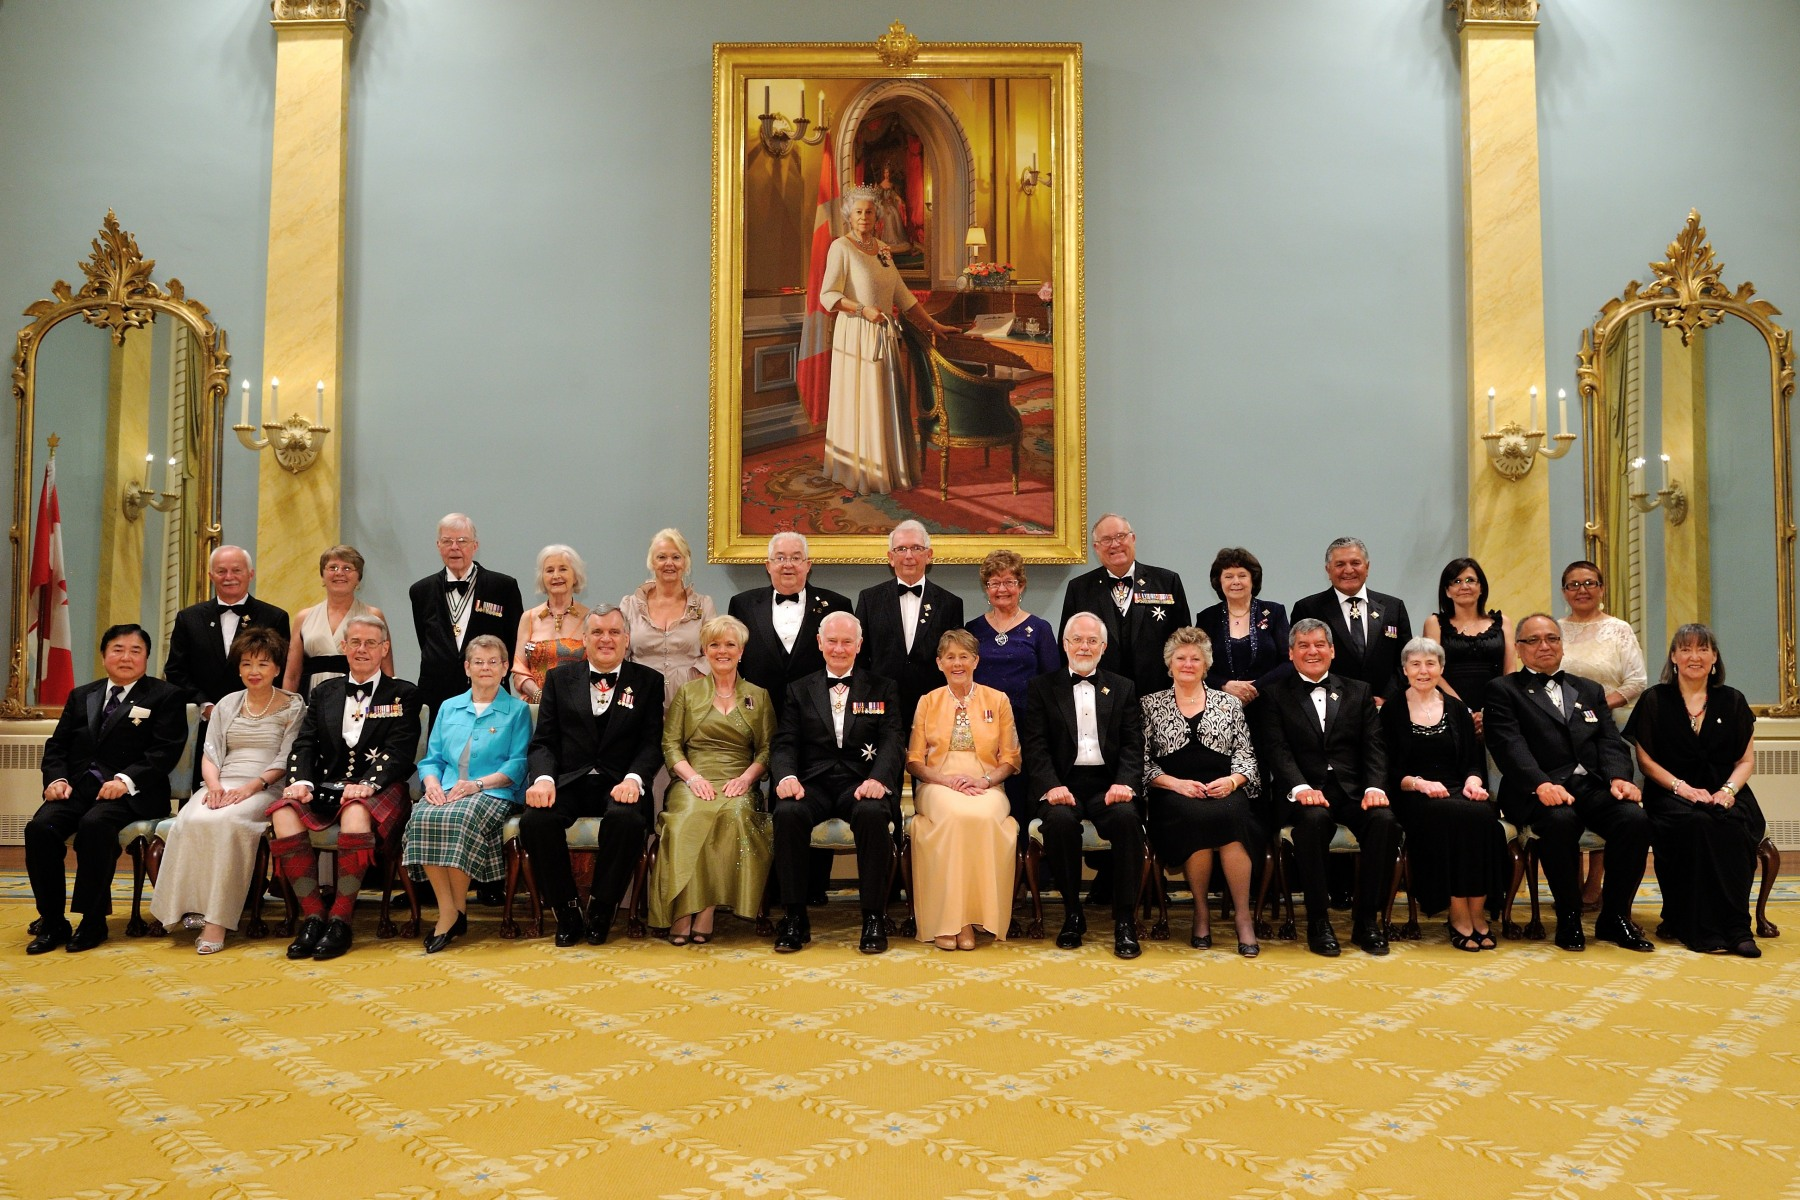 Official photo of Their Excellencies with lieutenant governors and territorial commissioners inside the Ballroom at Rideau Hall.